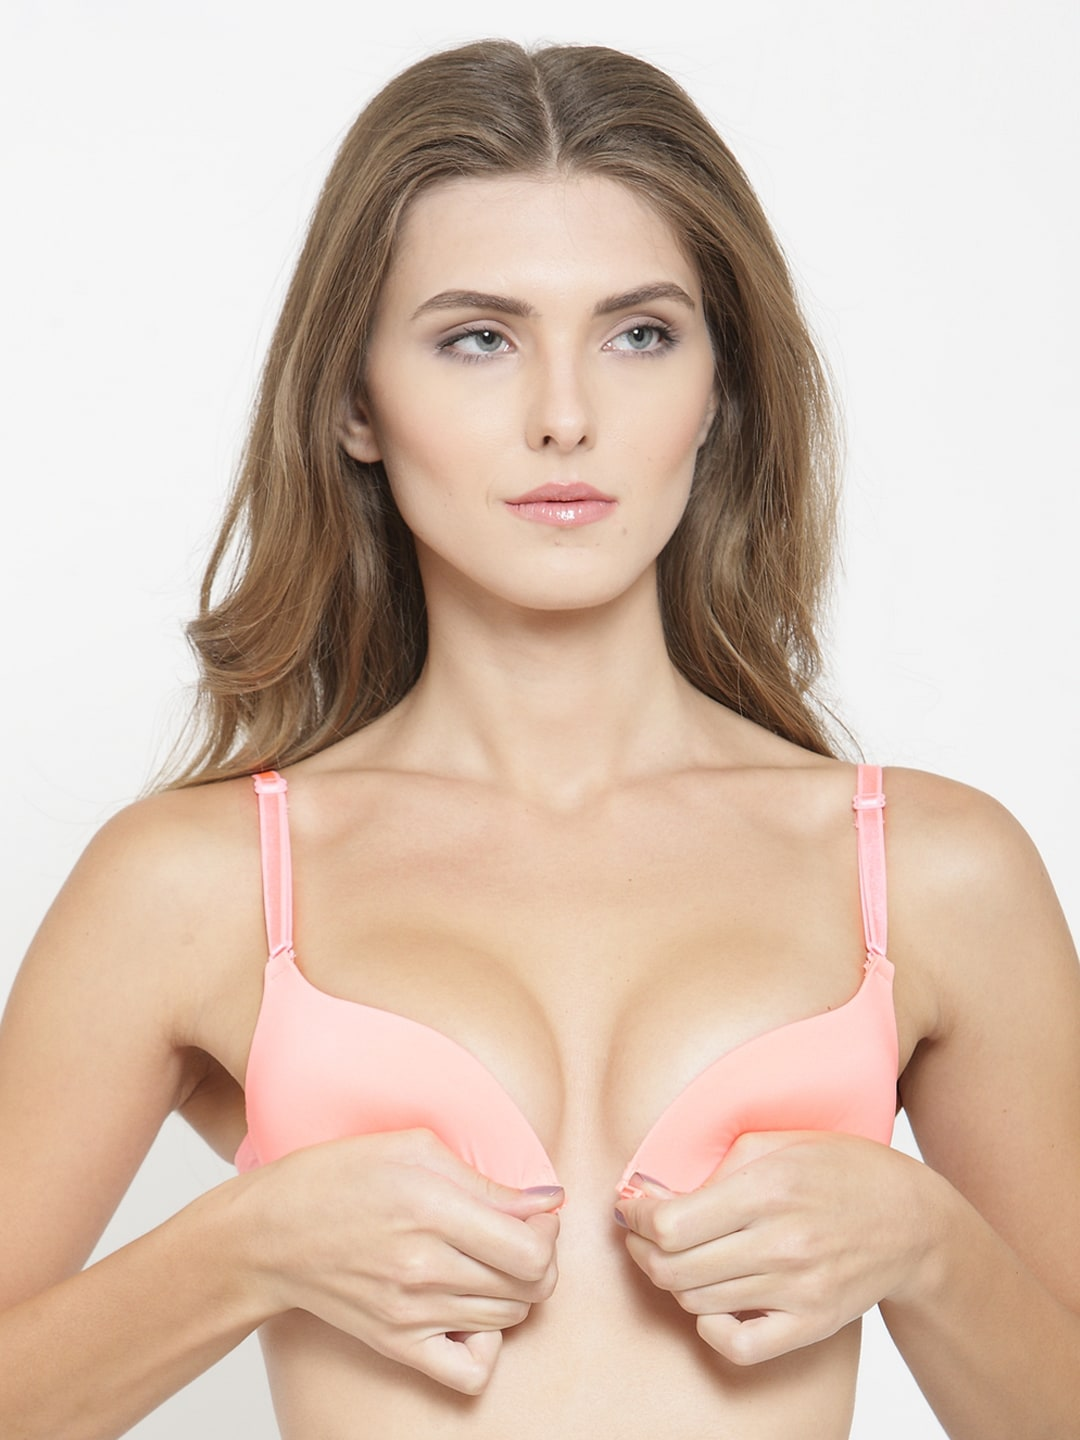 cb031c40893e1 Front Closure Bra Shapewear - Buy Front Closure Bra Shapewear online in  India